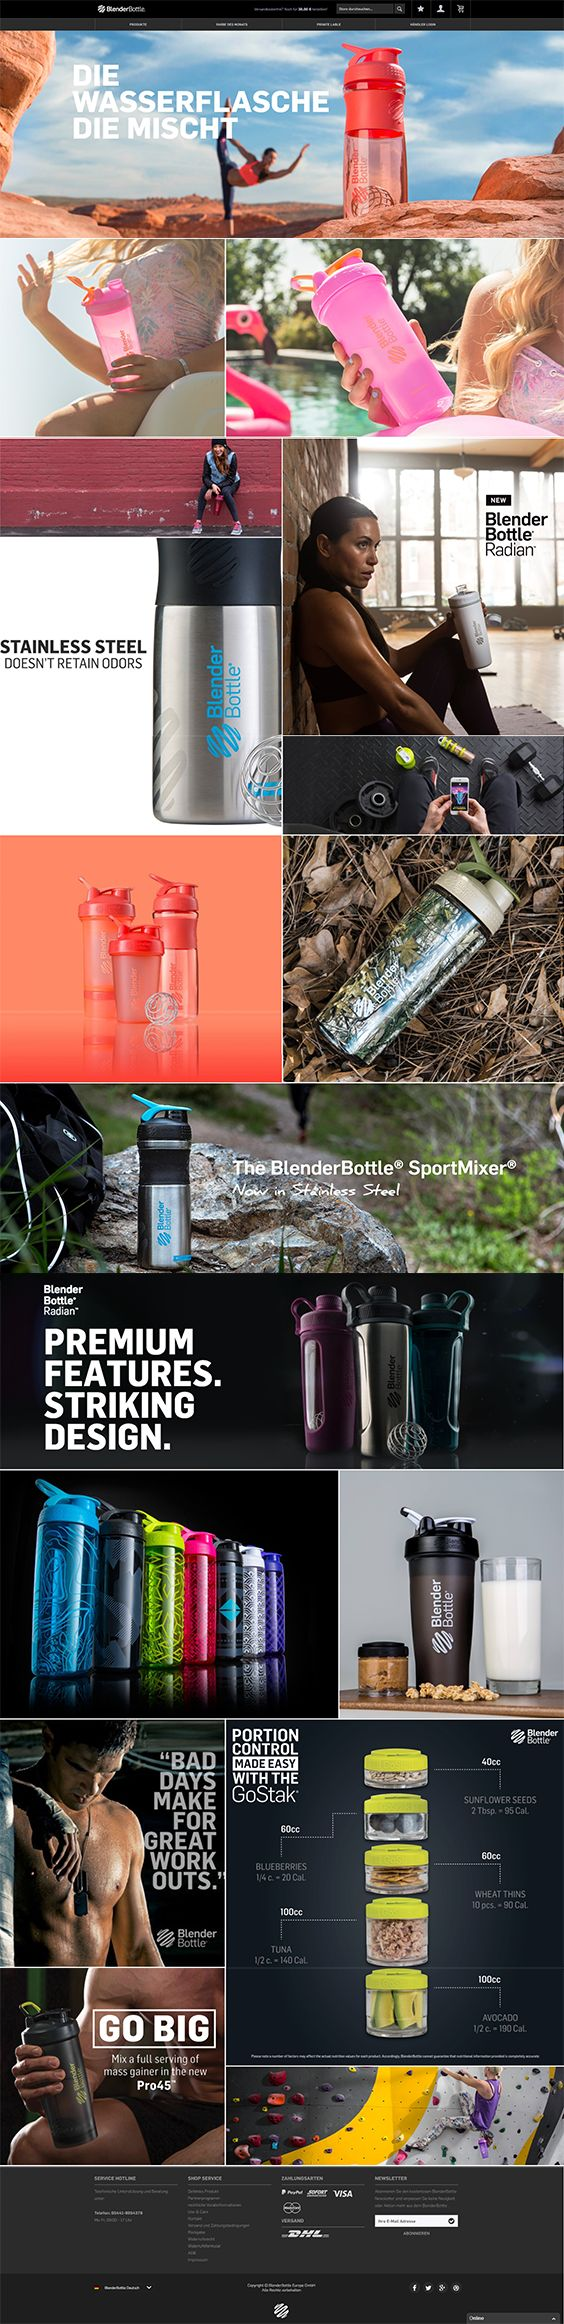 #ShopwareDesign #ShopwareTheme #ShopwareShop #eCommerce #eCommerceSoftware #eCommerceplatform #Onlineshop #Sports #Equipment #Blenderbottle #Drinkingbottle